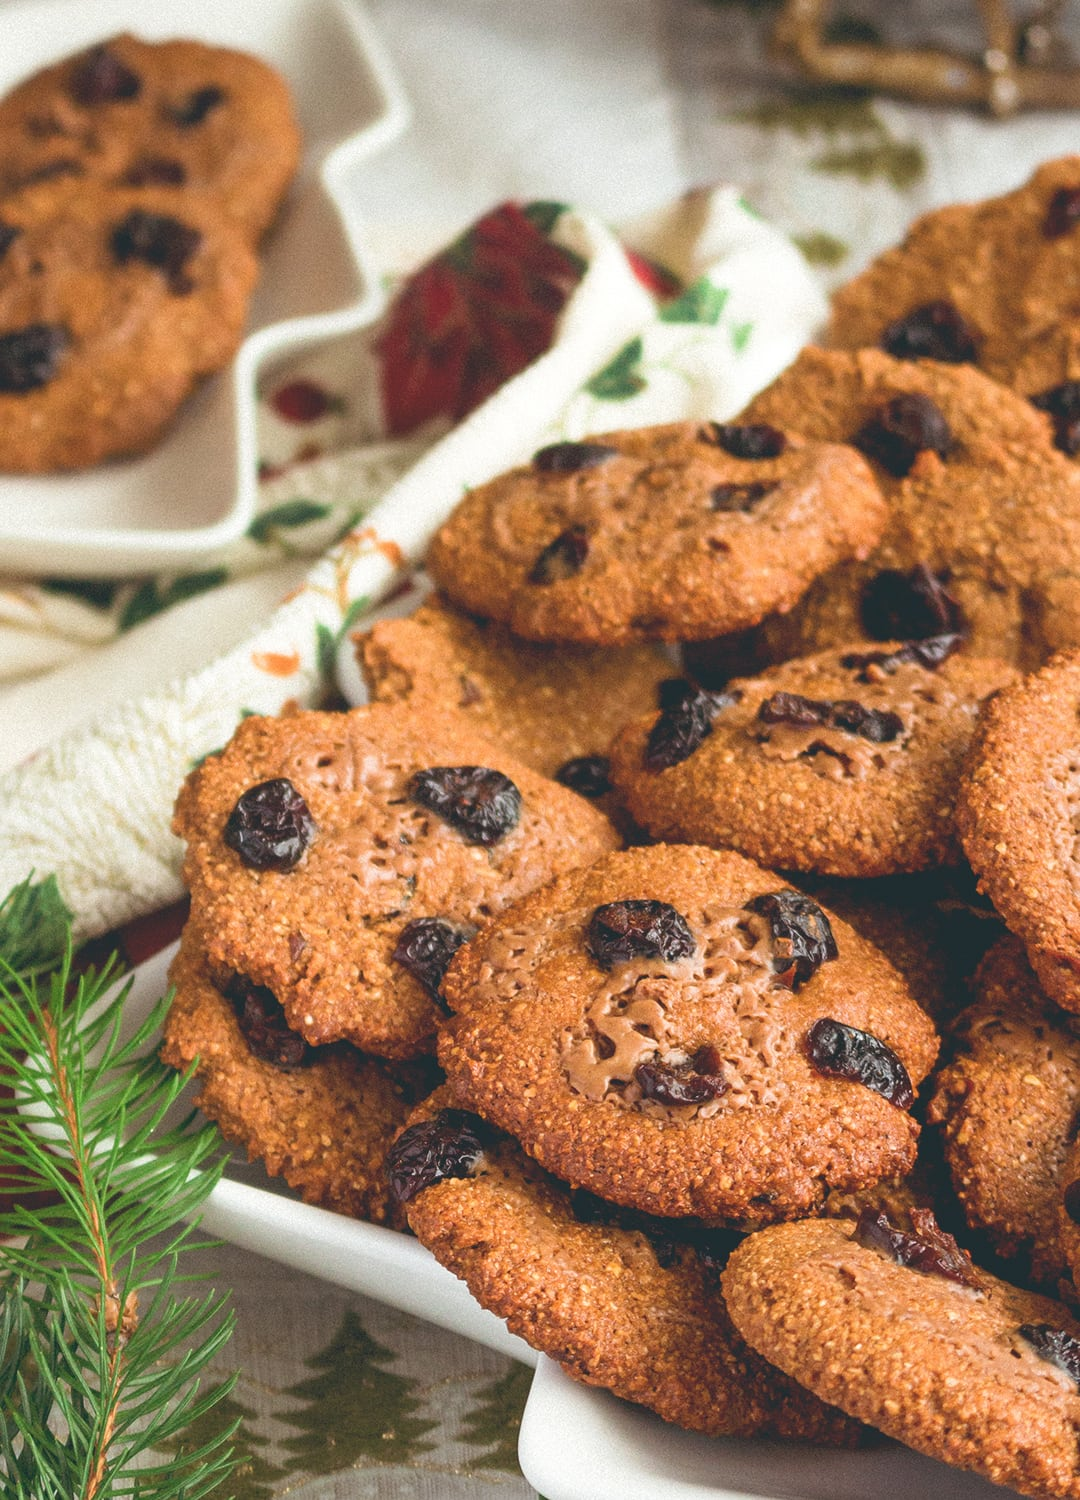 Cranberry Oat Cookies - crispy on the edges, chewy in the middle. These gingerbread flavored cookies are absolutely scrumptious! Our favorite Christmas recipe! | thehealthfulideas.com